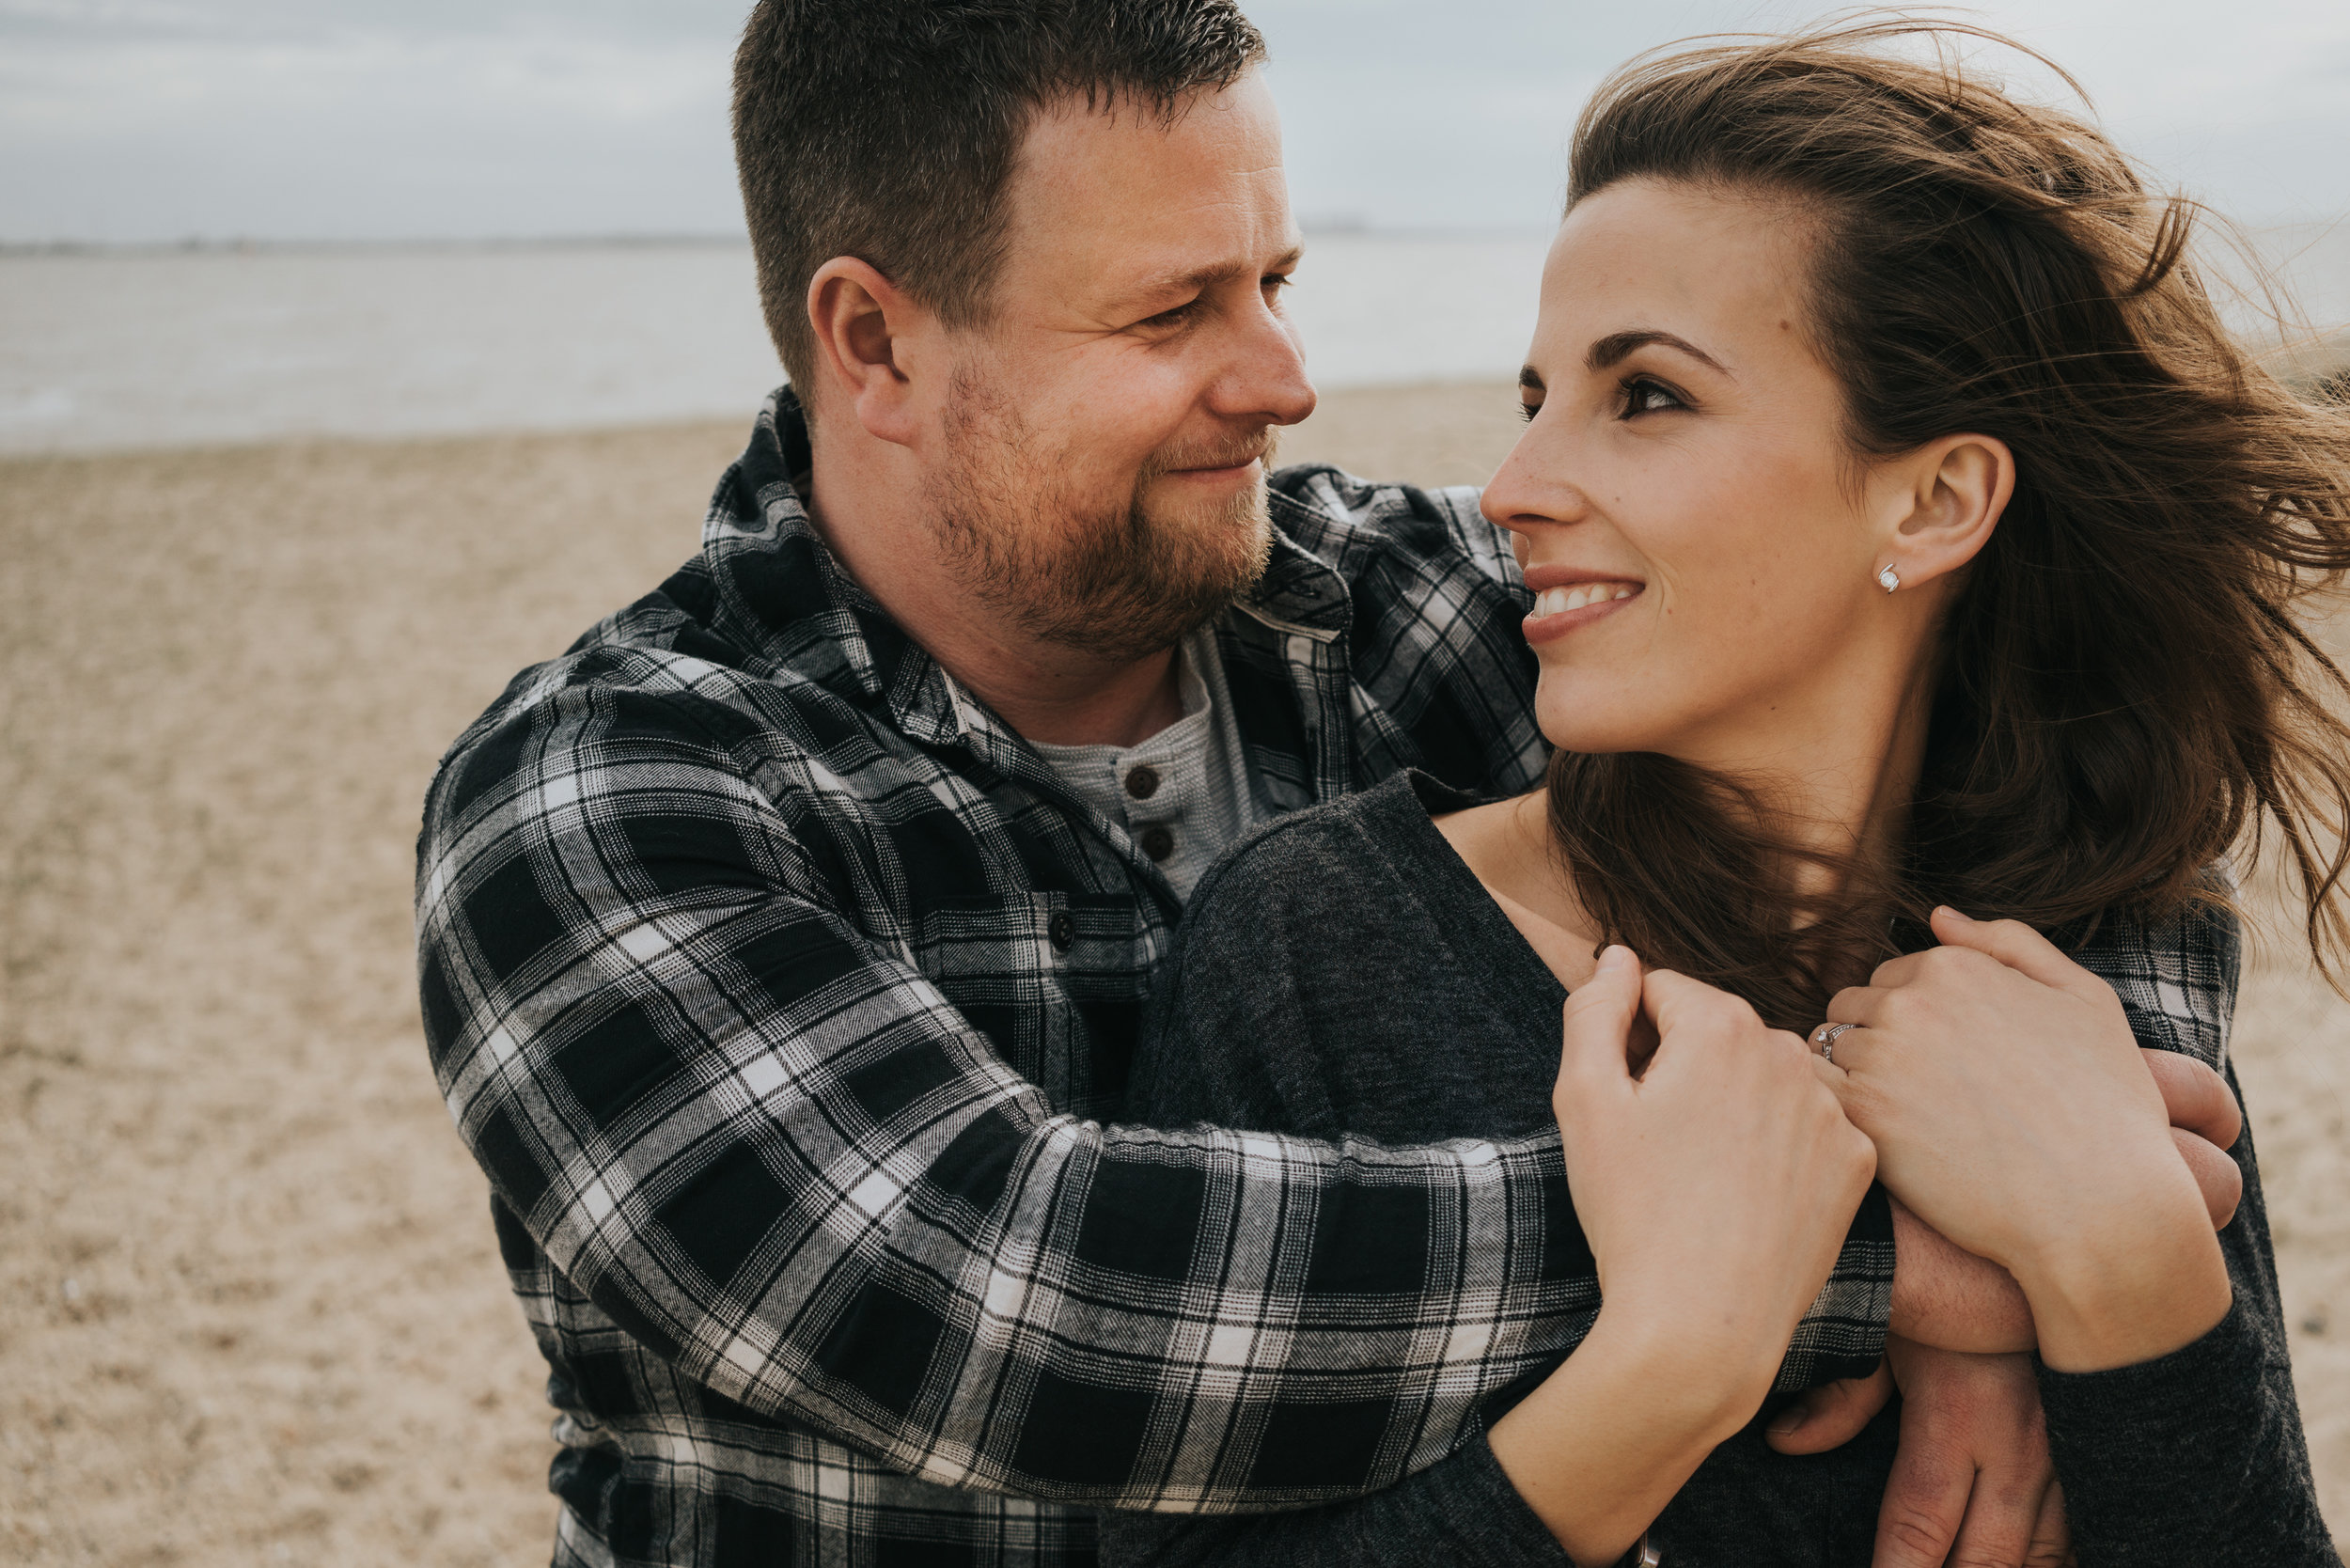 Anna and Darren's beach engagement session, Mersea, Essex.